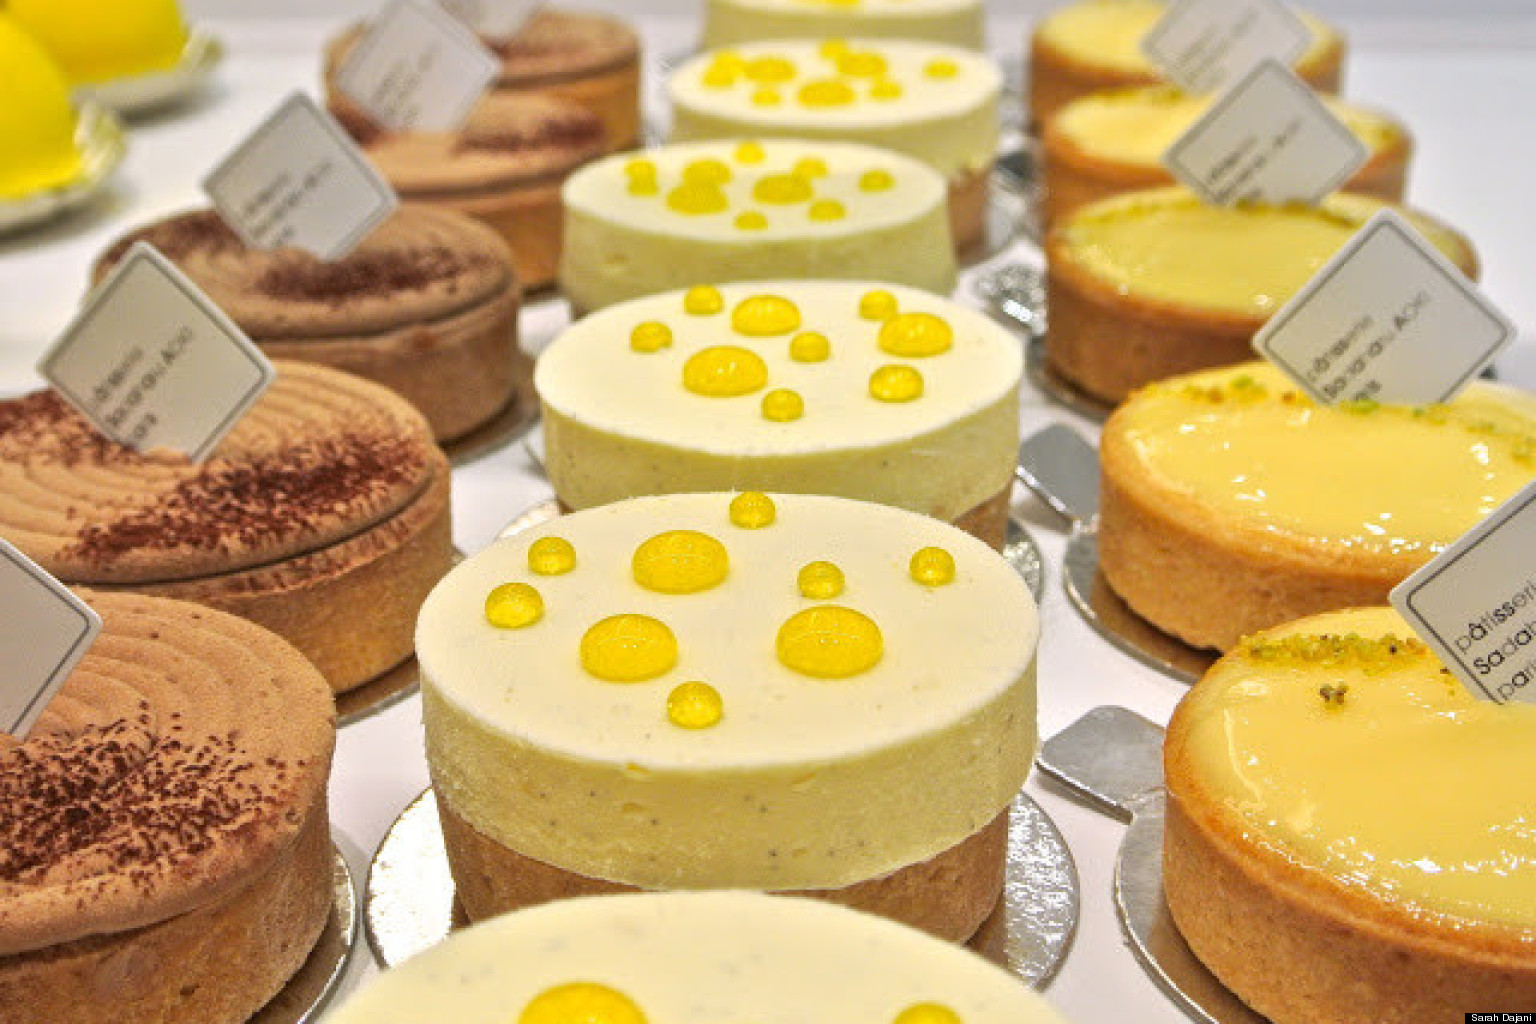 The fusion of french and japanese pastry sadaharu aoki in paris the fusion of french and japanese pastry sadaharu aoki in paris huffpost forumfinder Choice Image